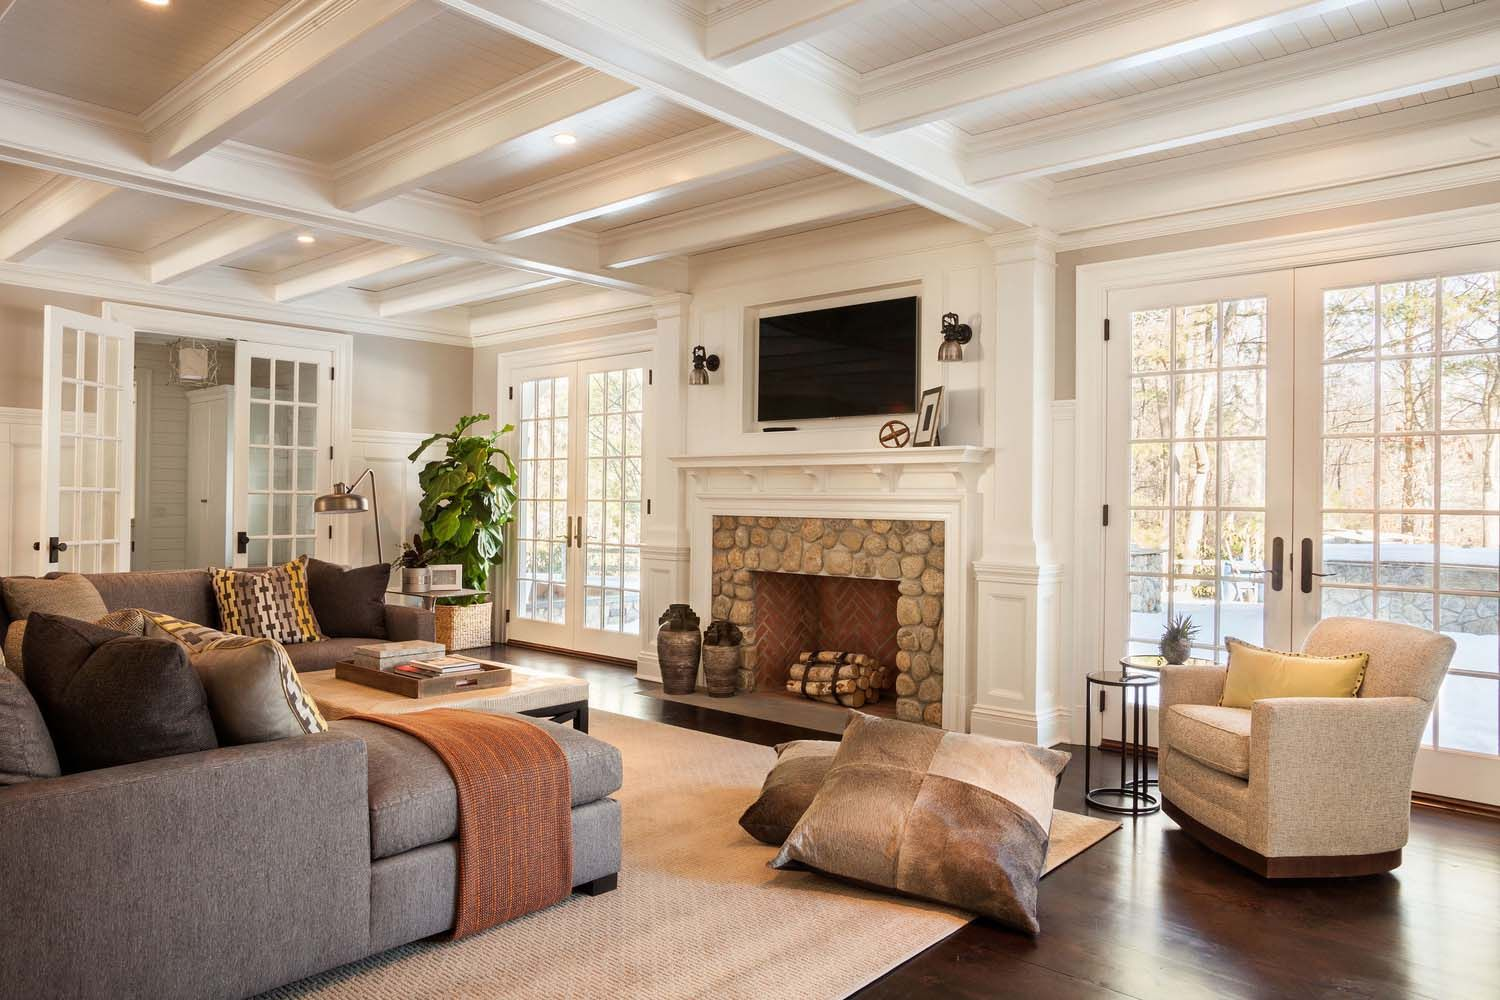 A Stylish Colonial Home With Traditional Interiors Was Designed For Family Living By Garrison Hullinger Interior